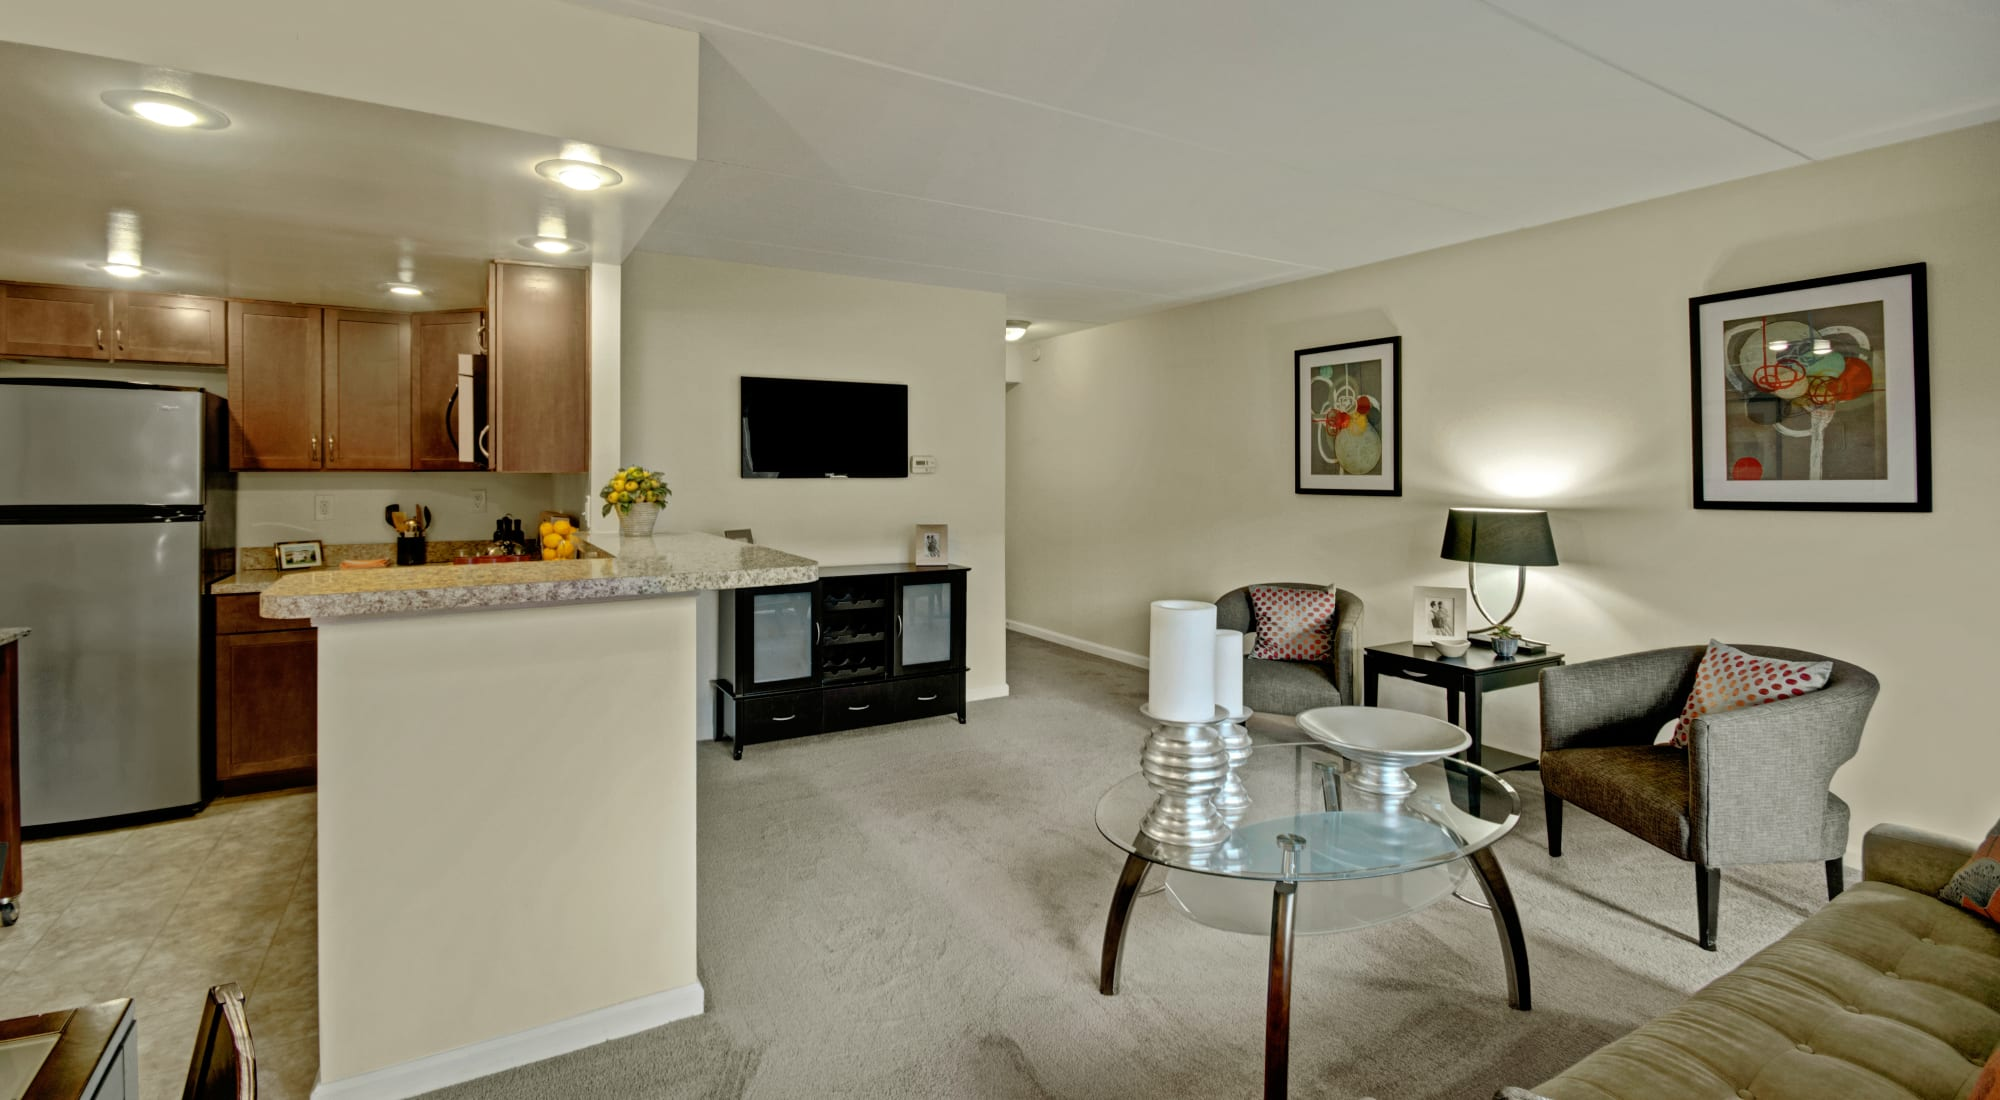 Floor plans at Racquet Club Apartments and Townhomes in Levittown, Pennsylvania